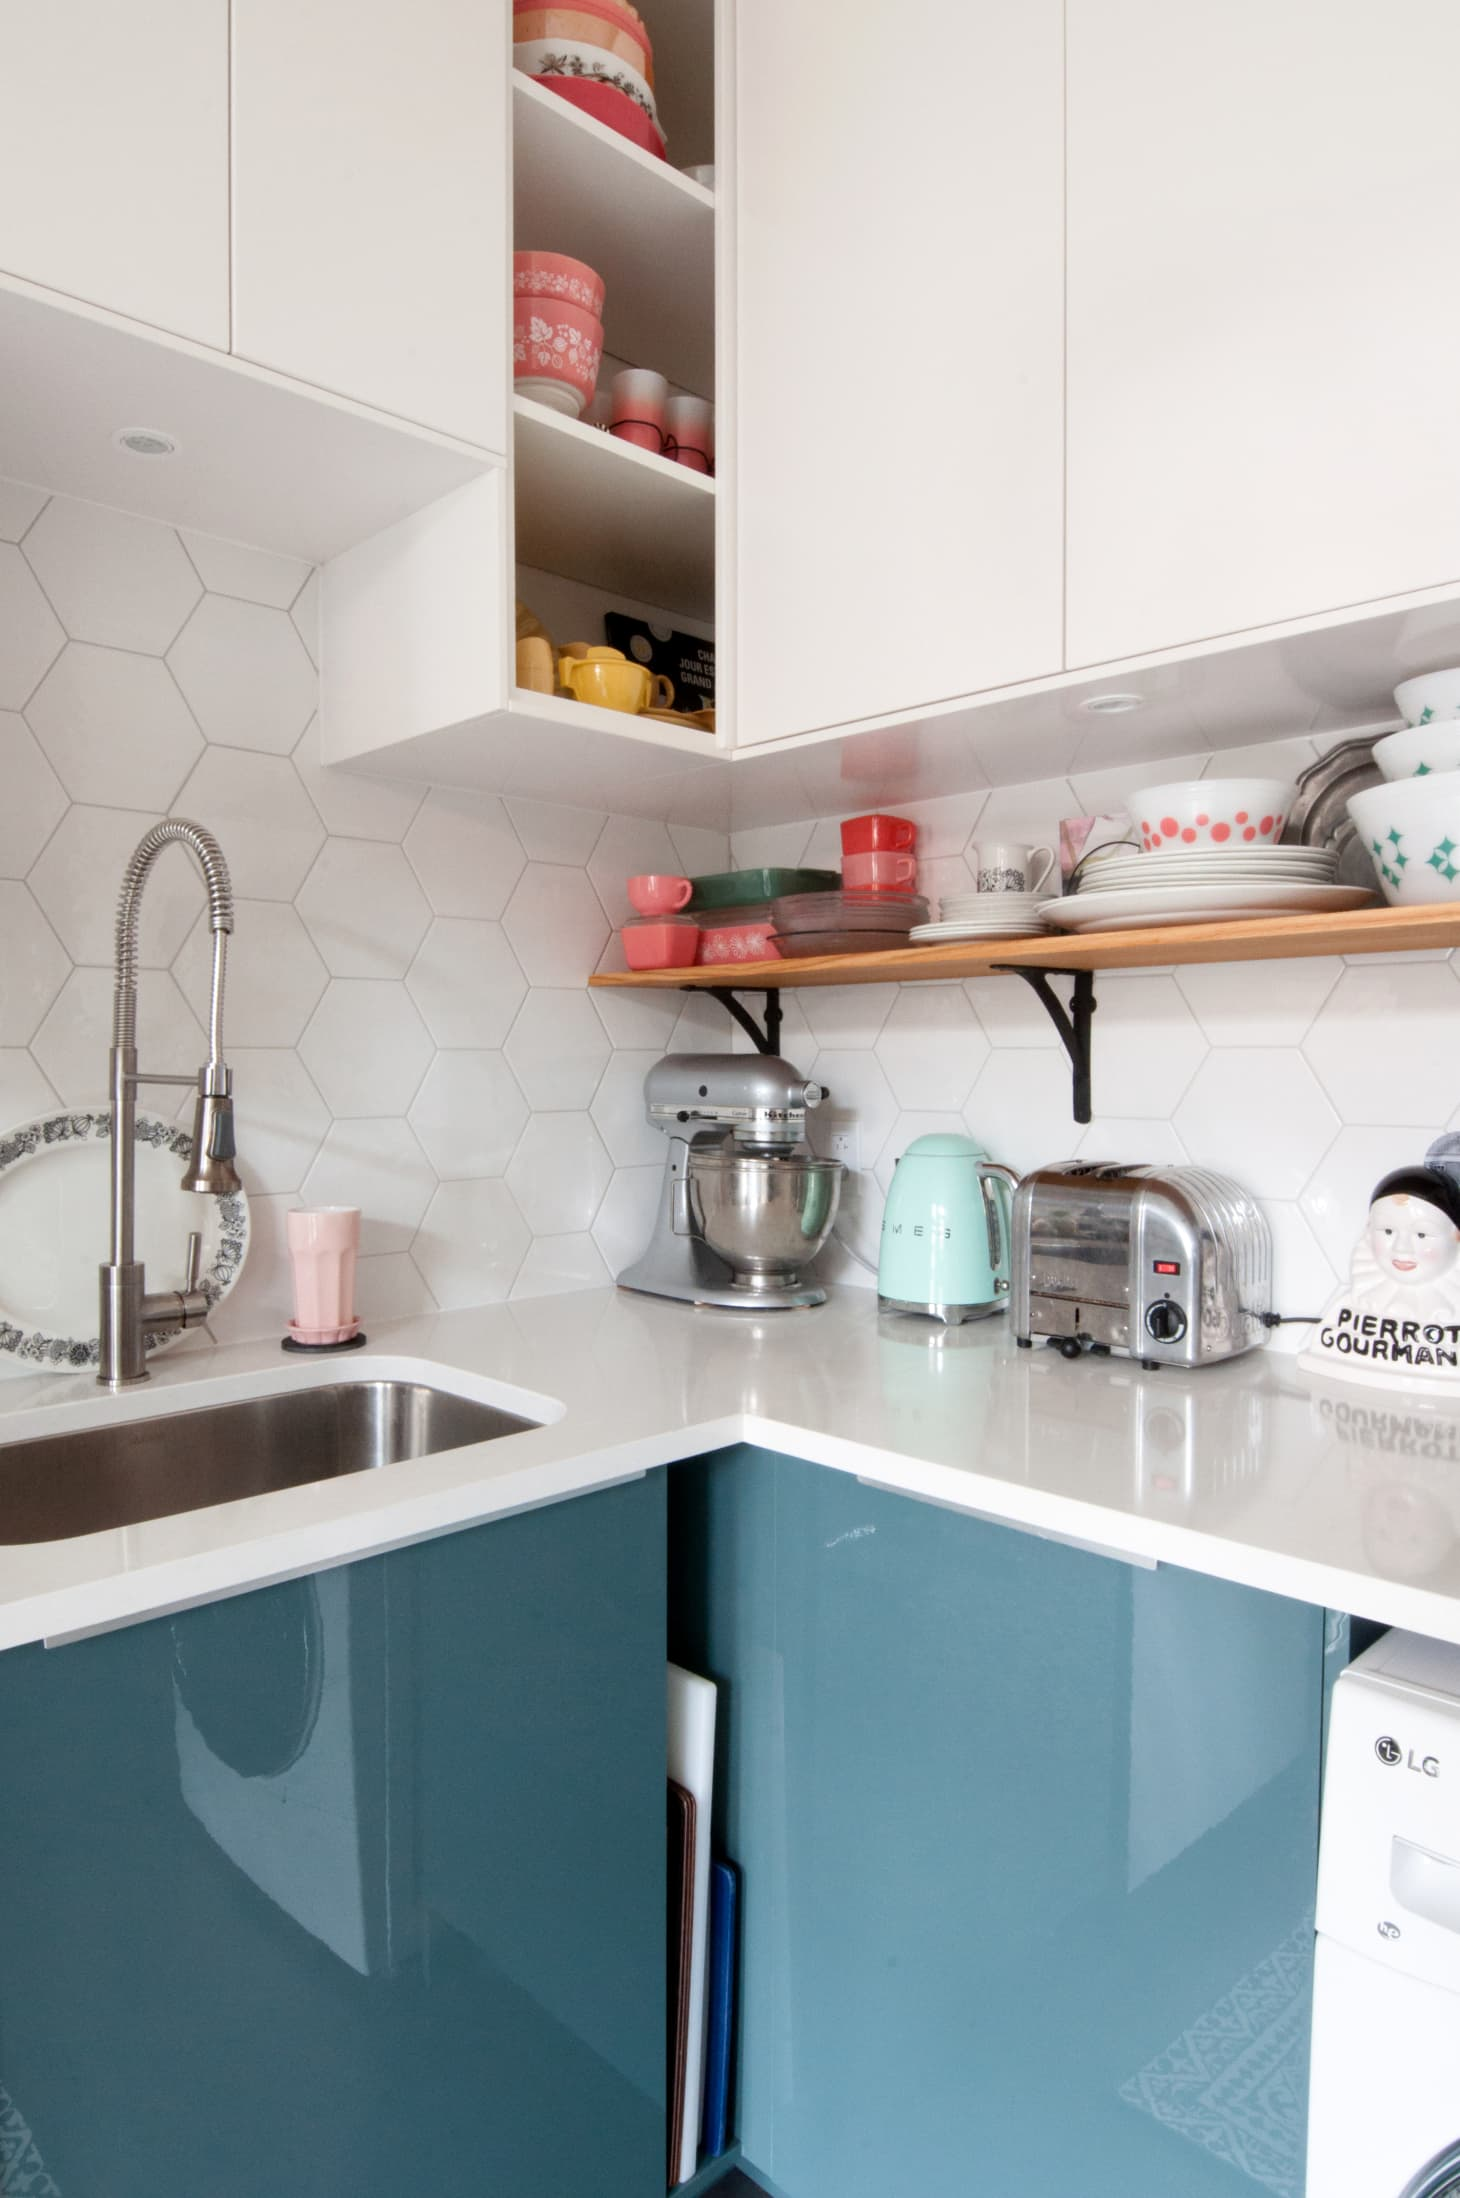 35 Best Small Kitchen Design Ideas - Decorating Small ...